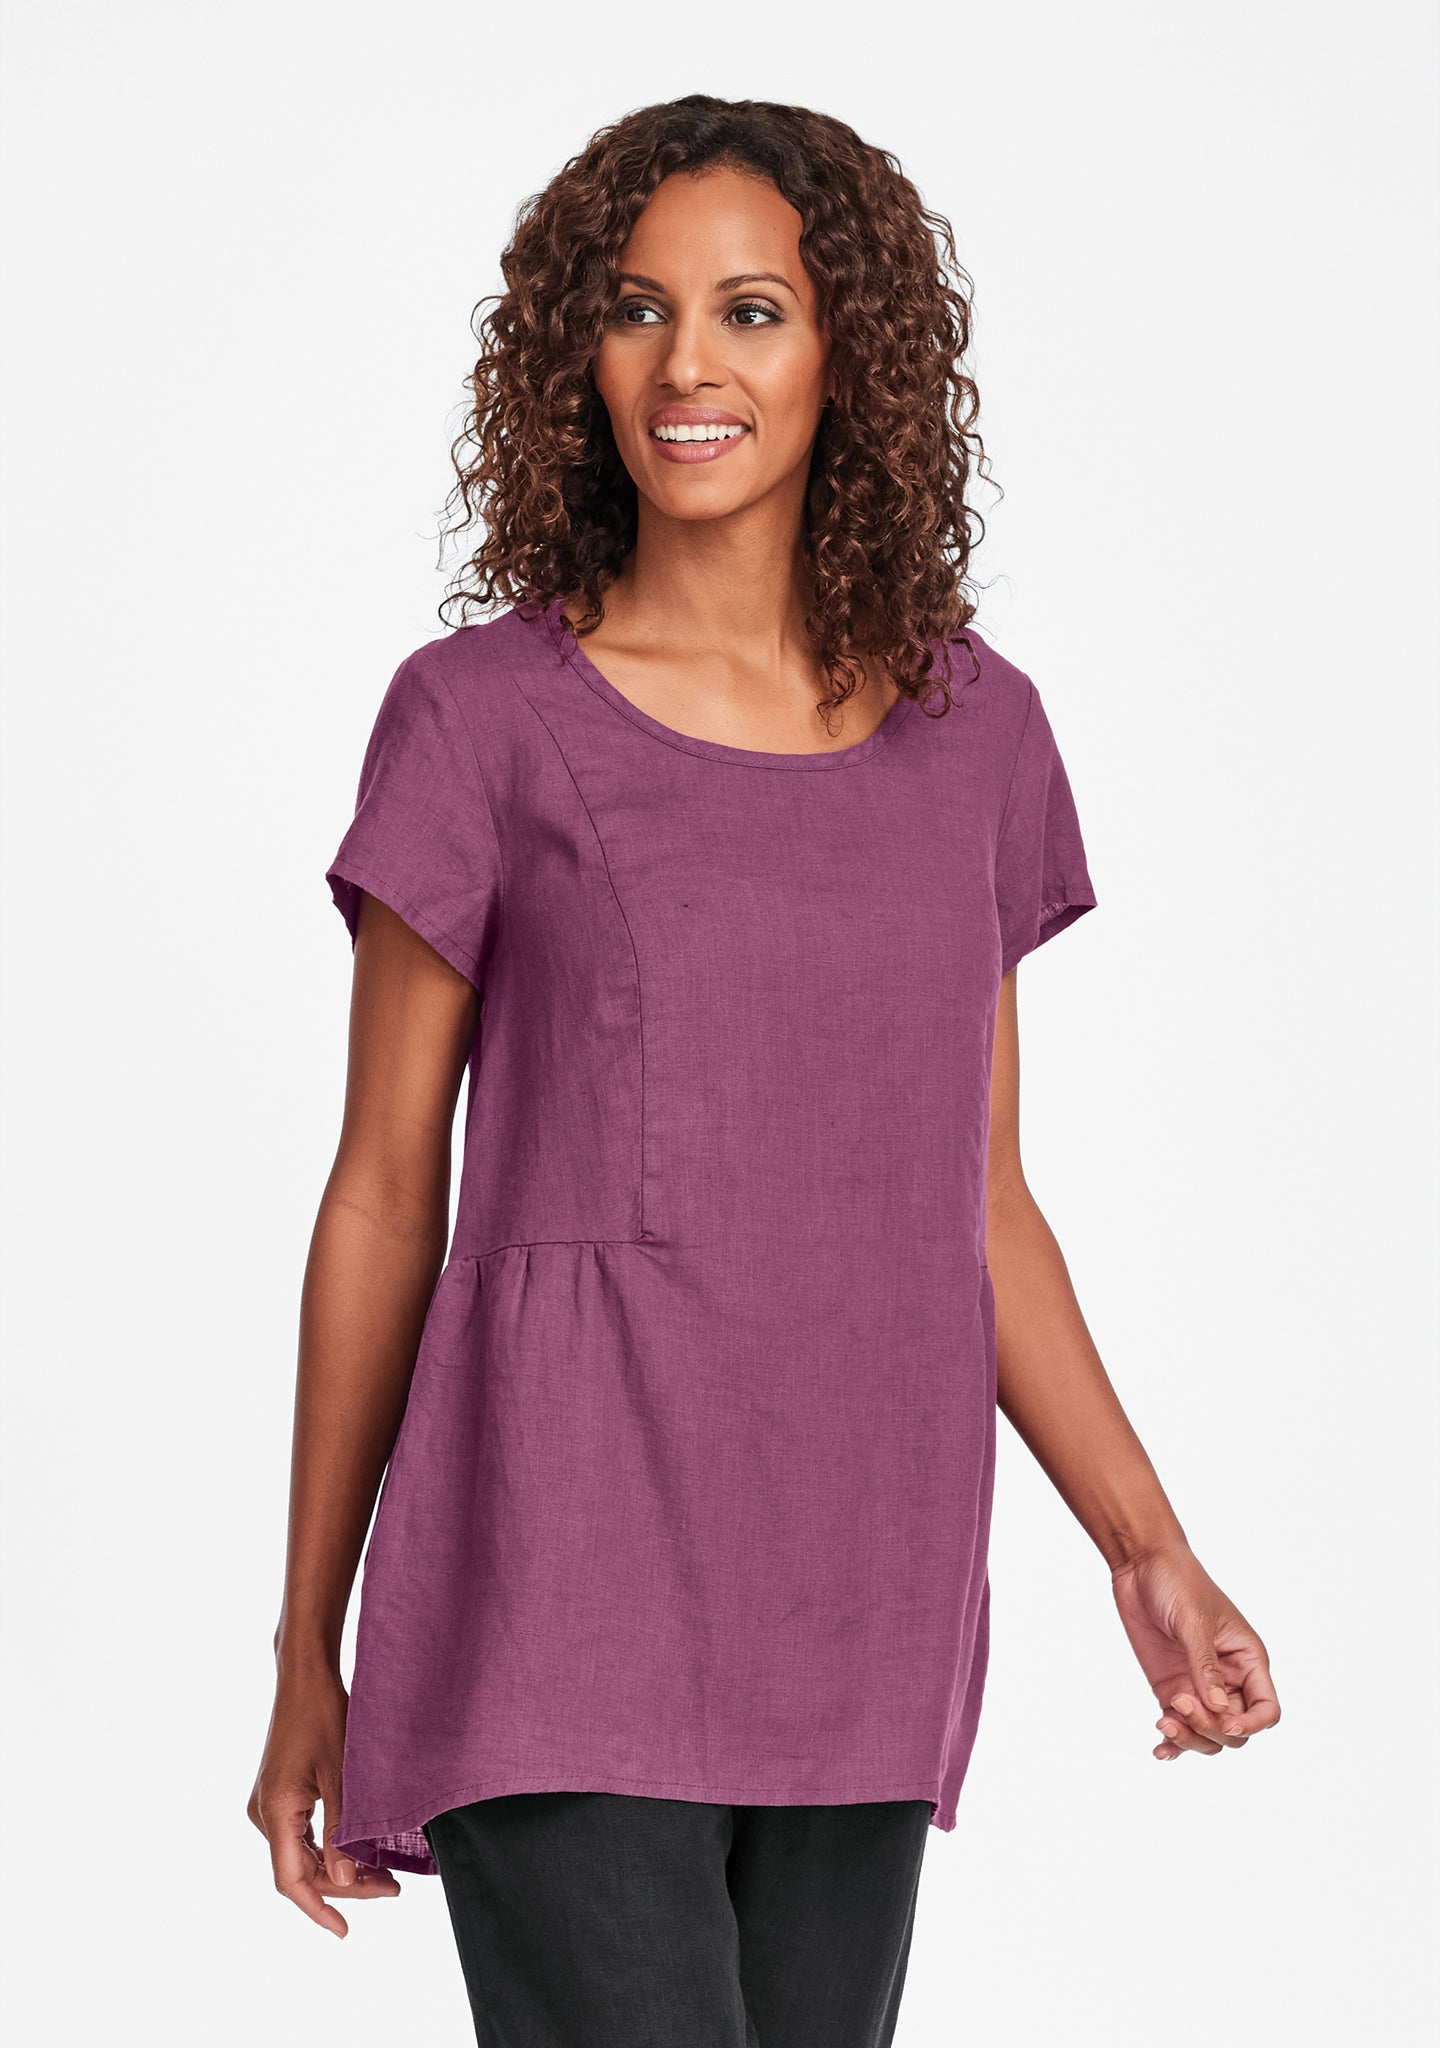 s/s play in it linen t shirt purple